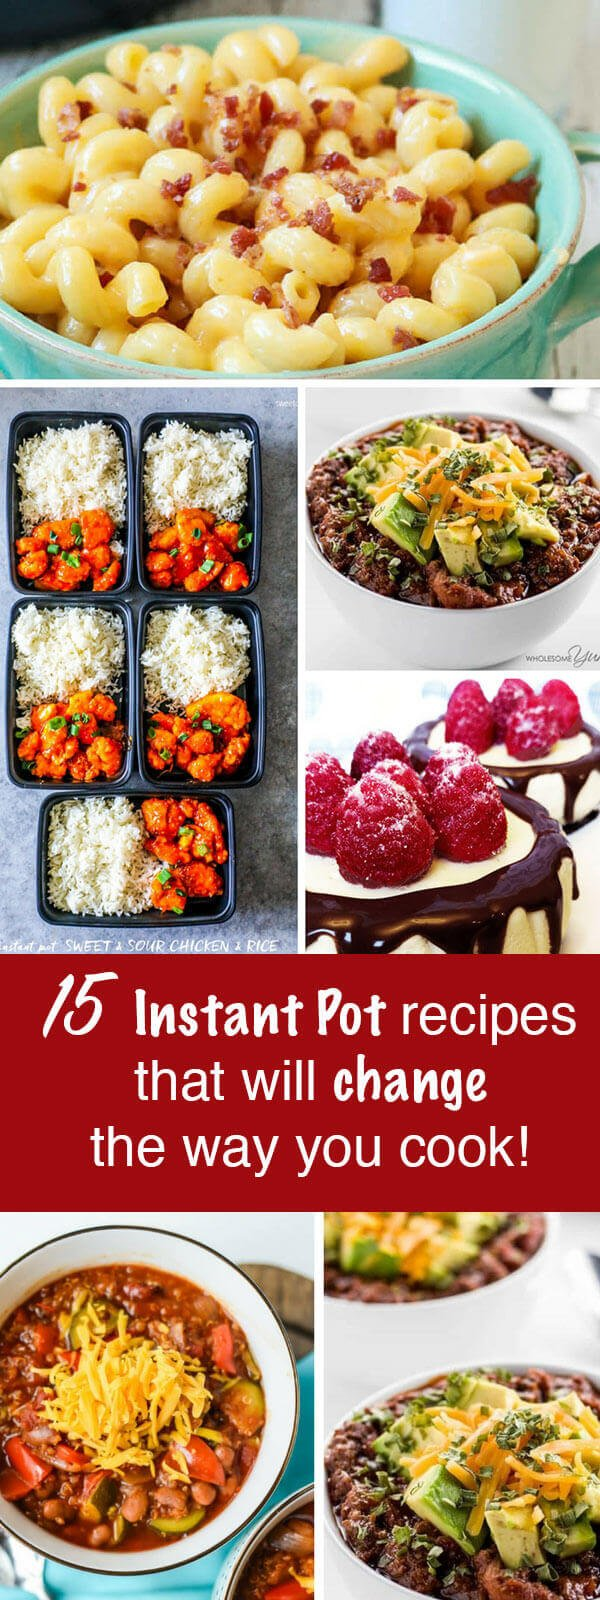 Need a change to kick-start your meal planning strategies? Try these 15 Instant Pot recipes that will change the way you think about making dinner! 15 Instant Pot Recipes To Change the Way You Cook {Easy Dinner Ideas}